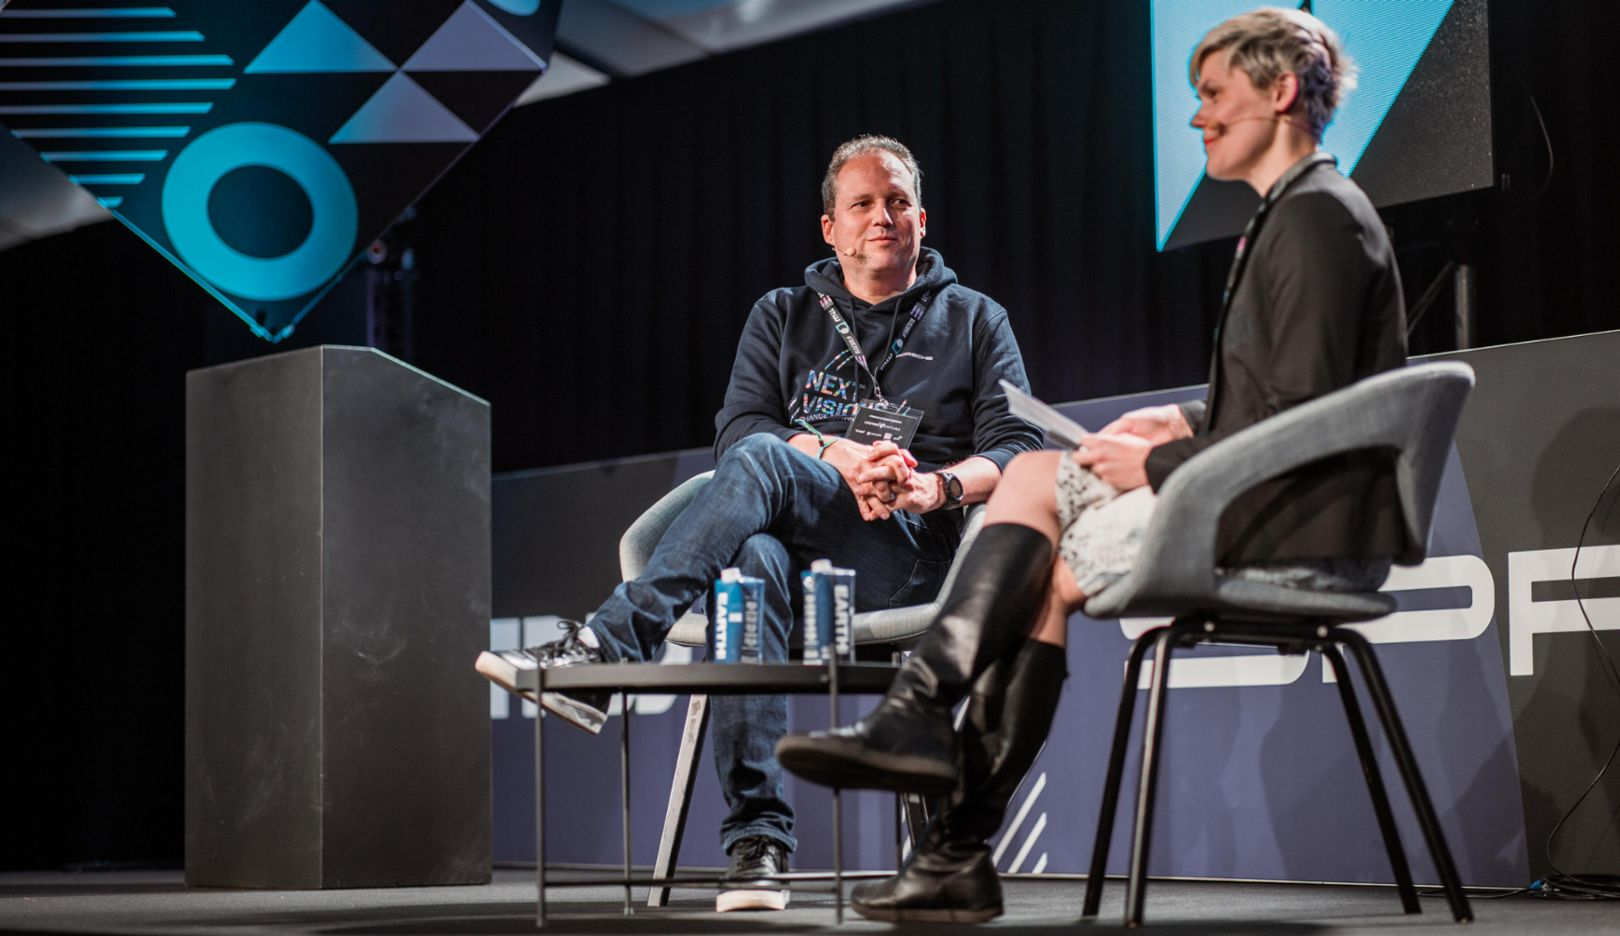 Stefan Zerweck, Porsche Digital COO, Katia Moskvitch, Wired UK, TNW 2019, Porsche AG